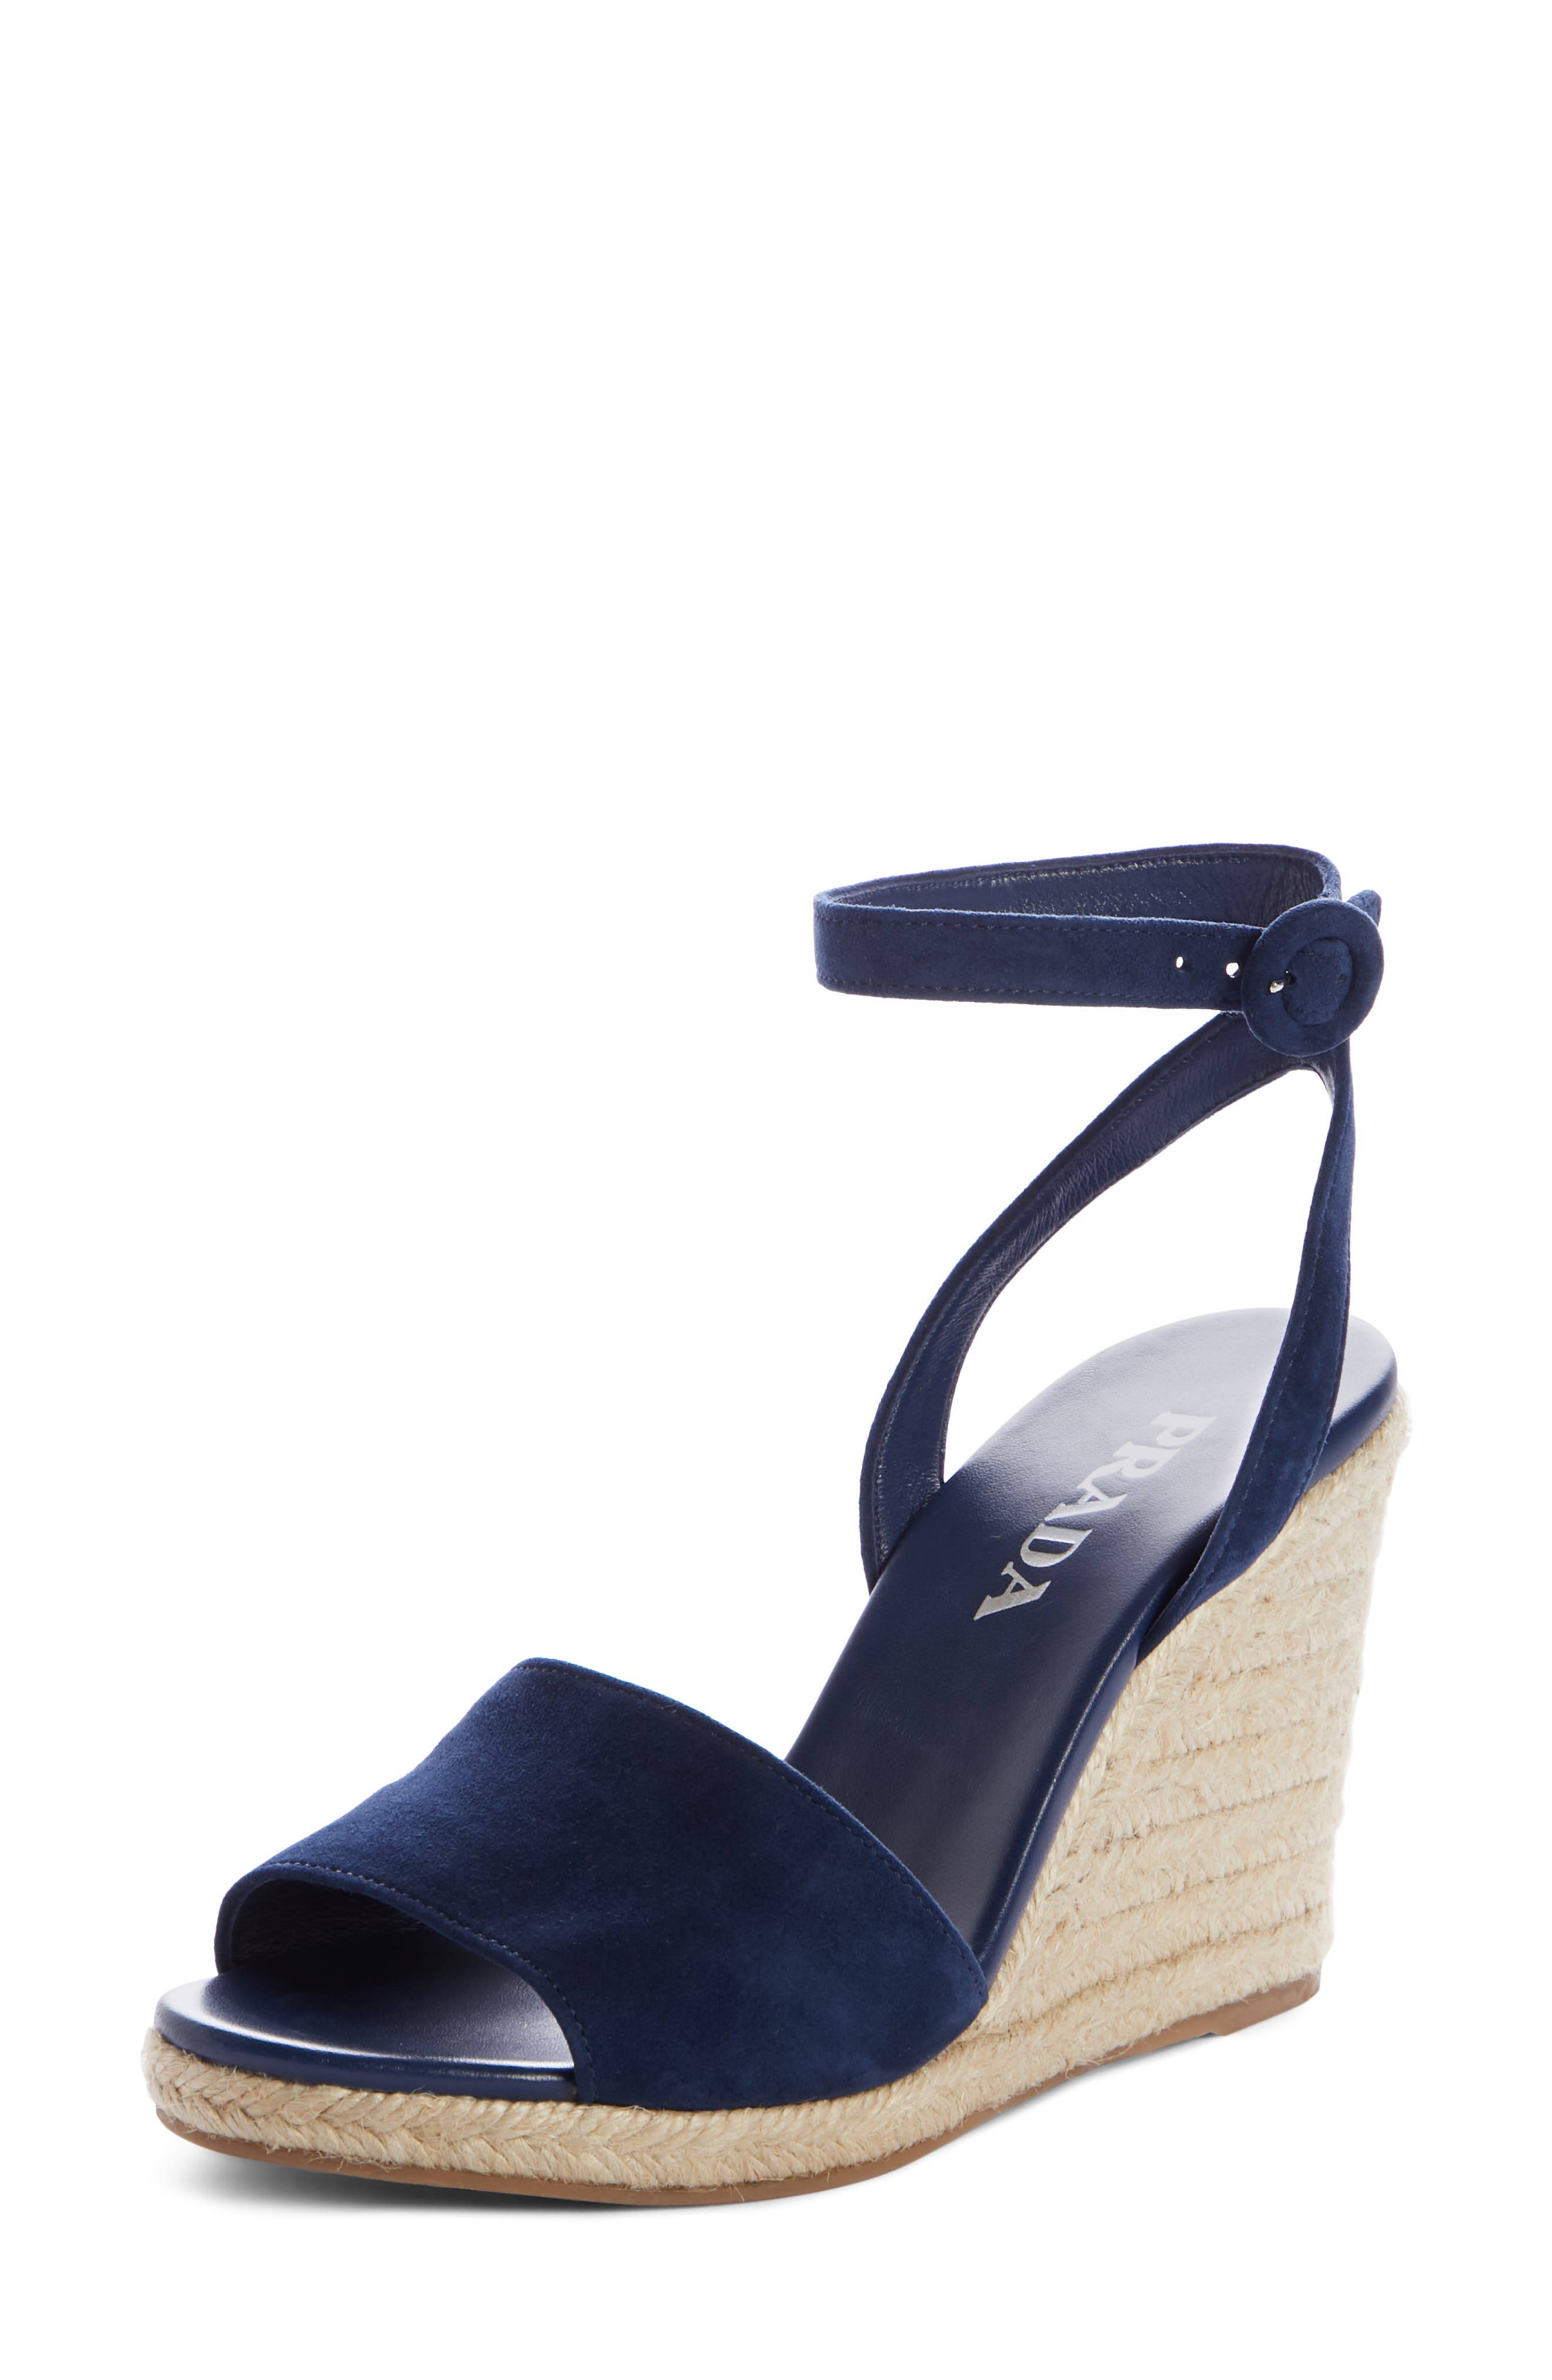 PRADA, Espadrille Wedge, Main thumbnail 1, color, OLTREMARE SUEDE